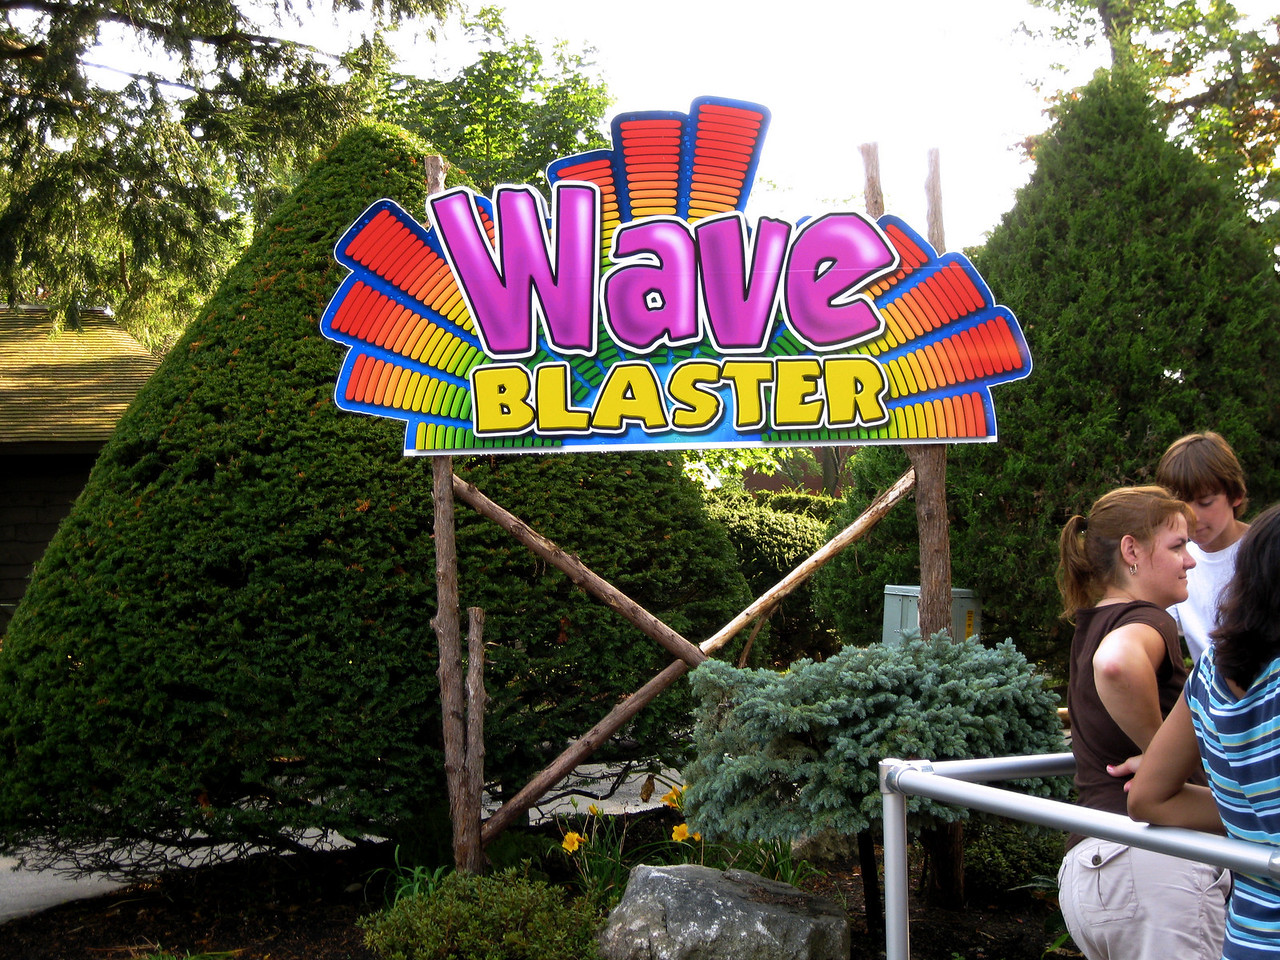 The Wave Blaster sign had new, rustic-themed sign posts.